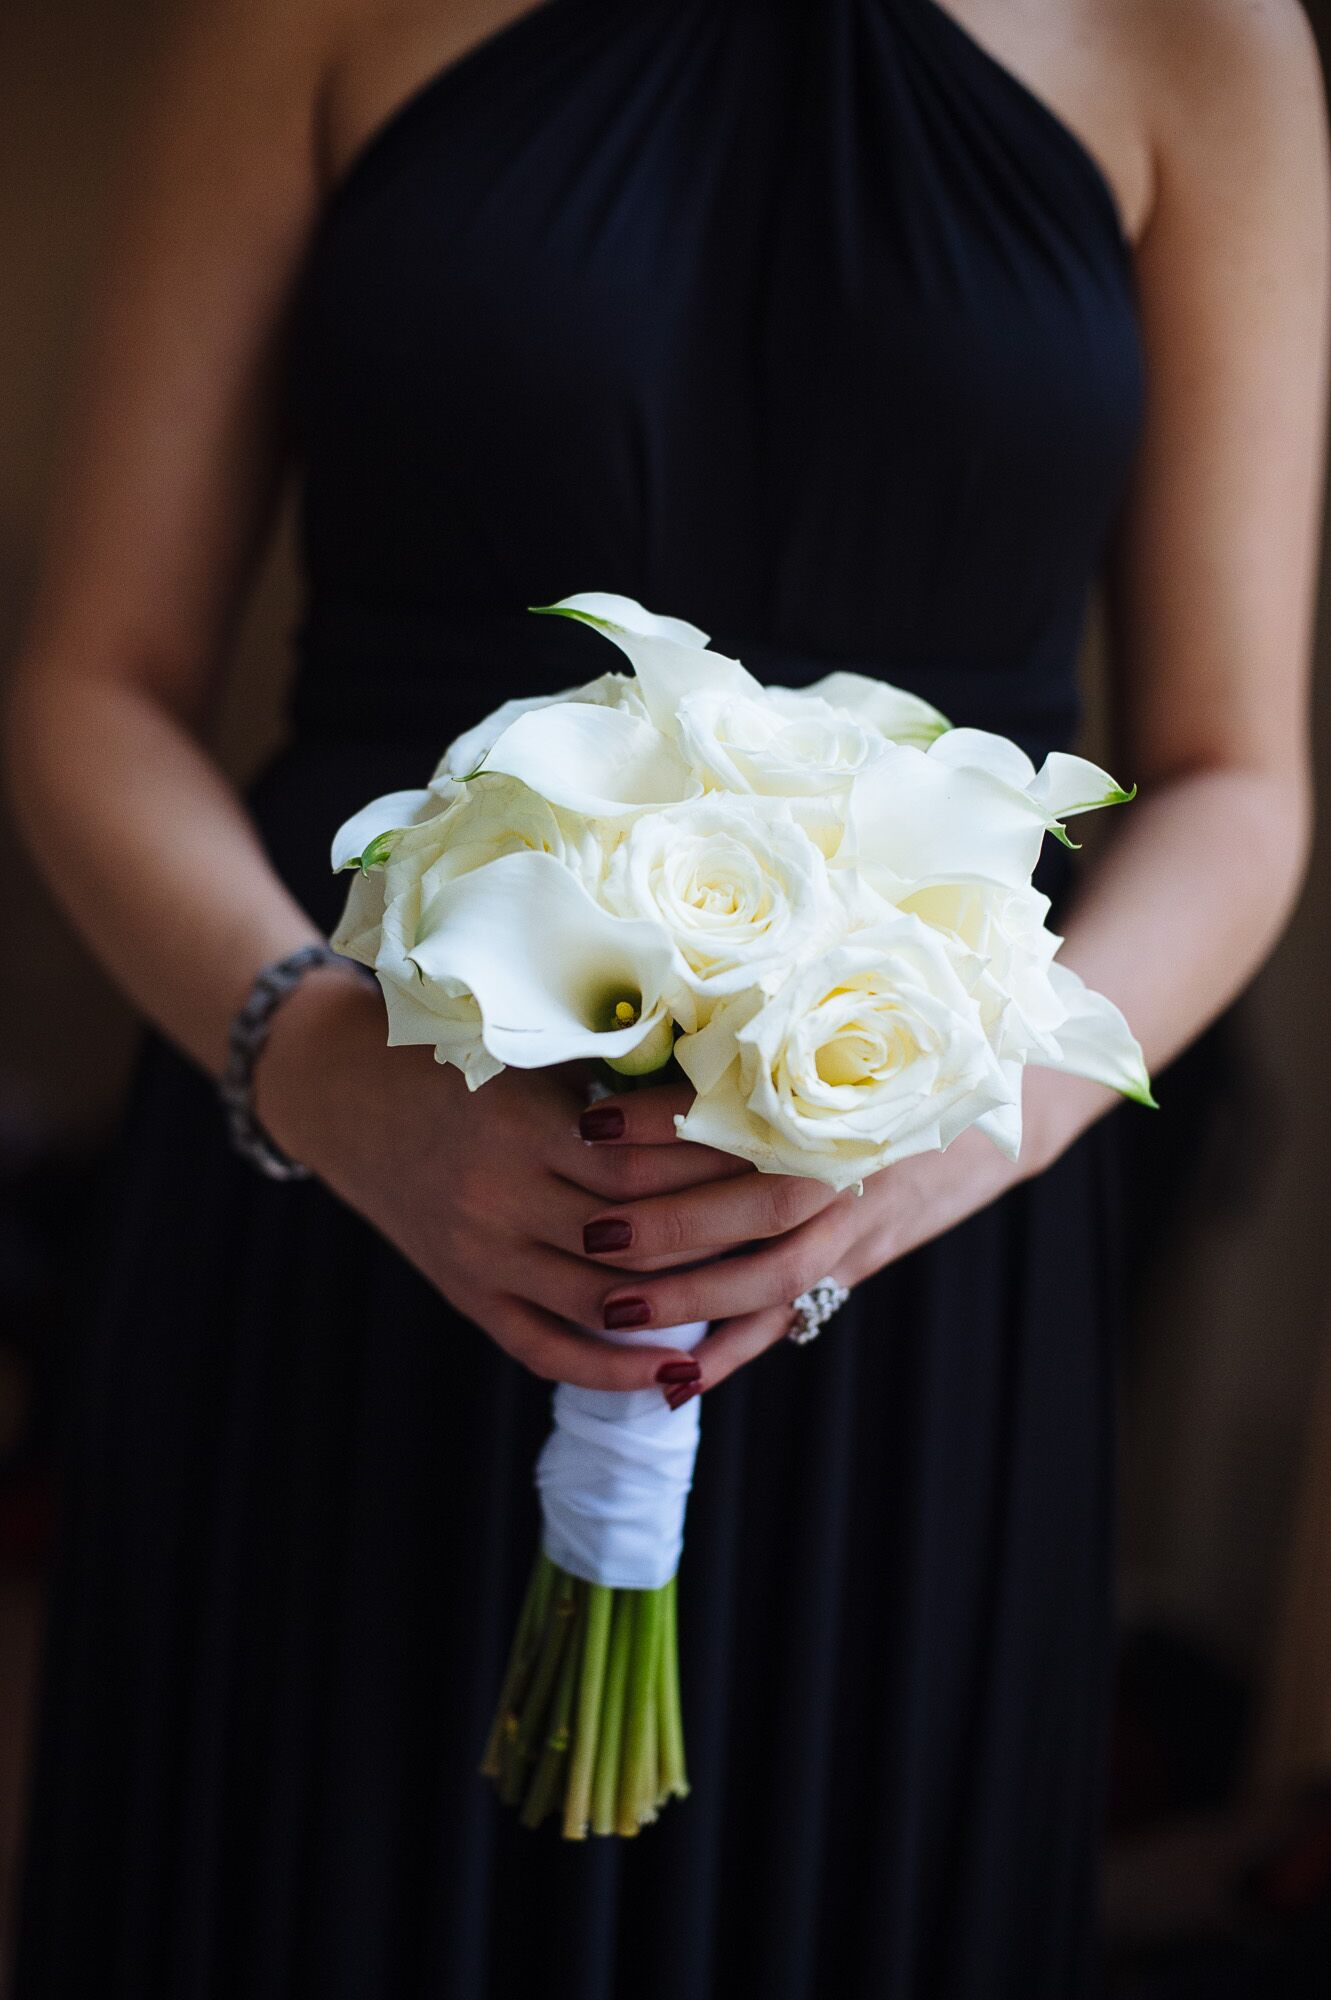 All White Calla Lily And Rose Bouquet